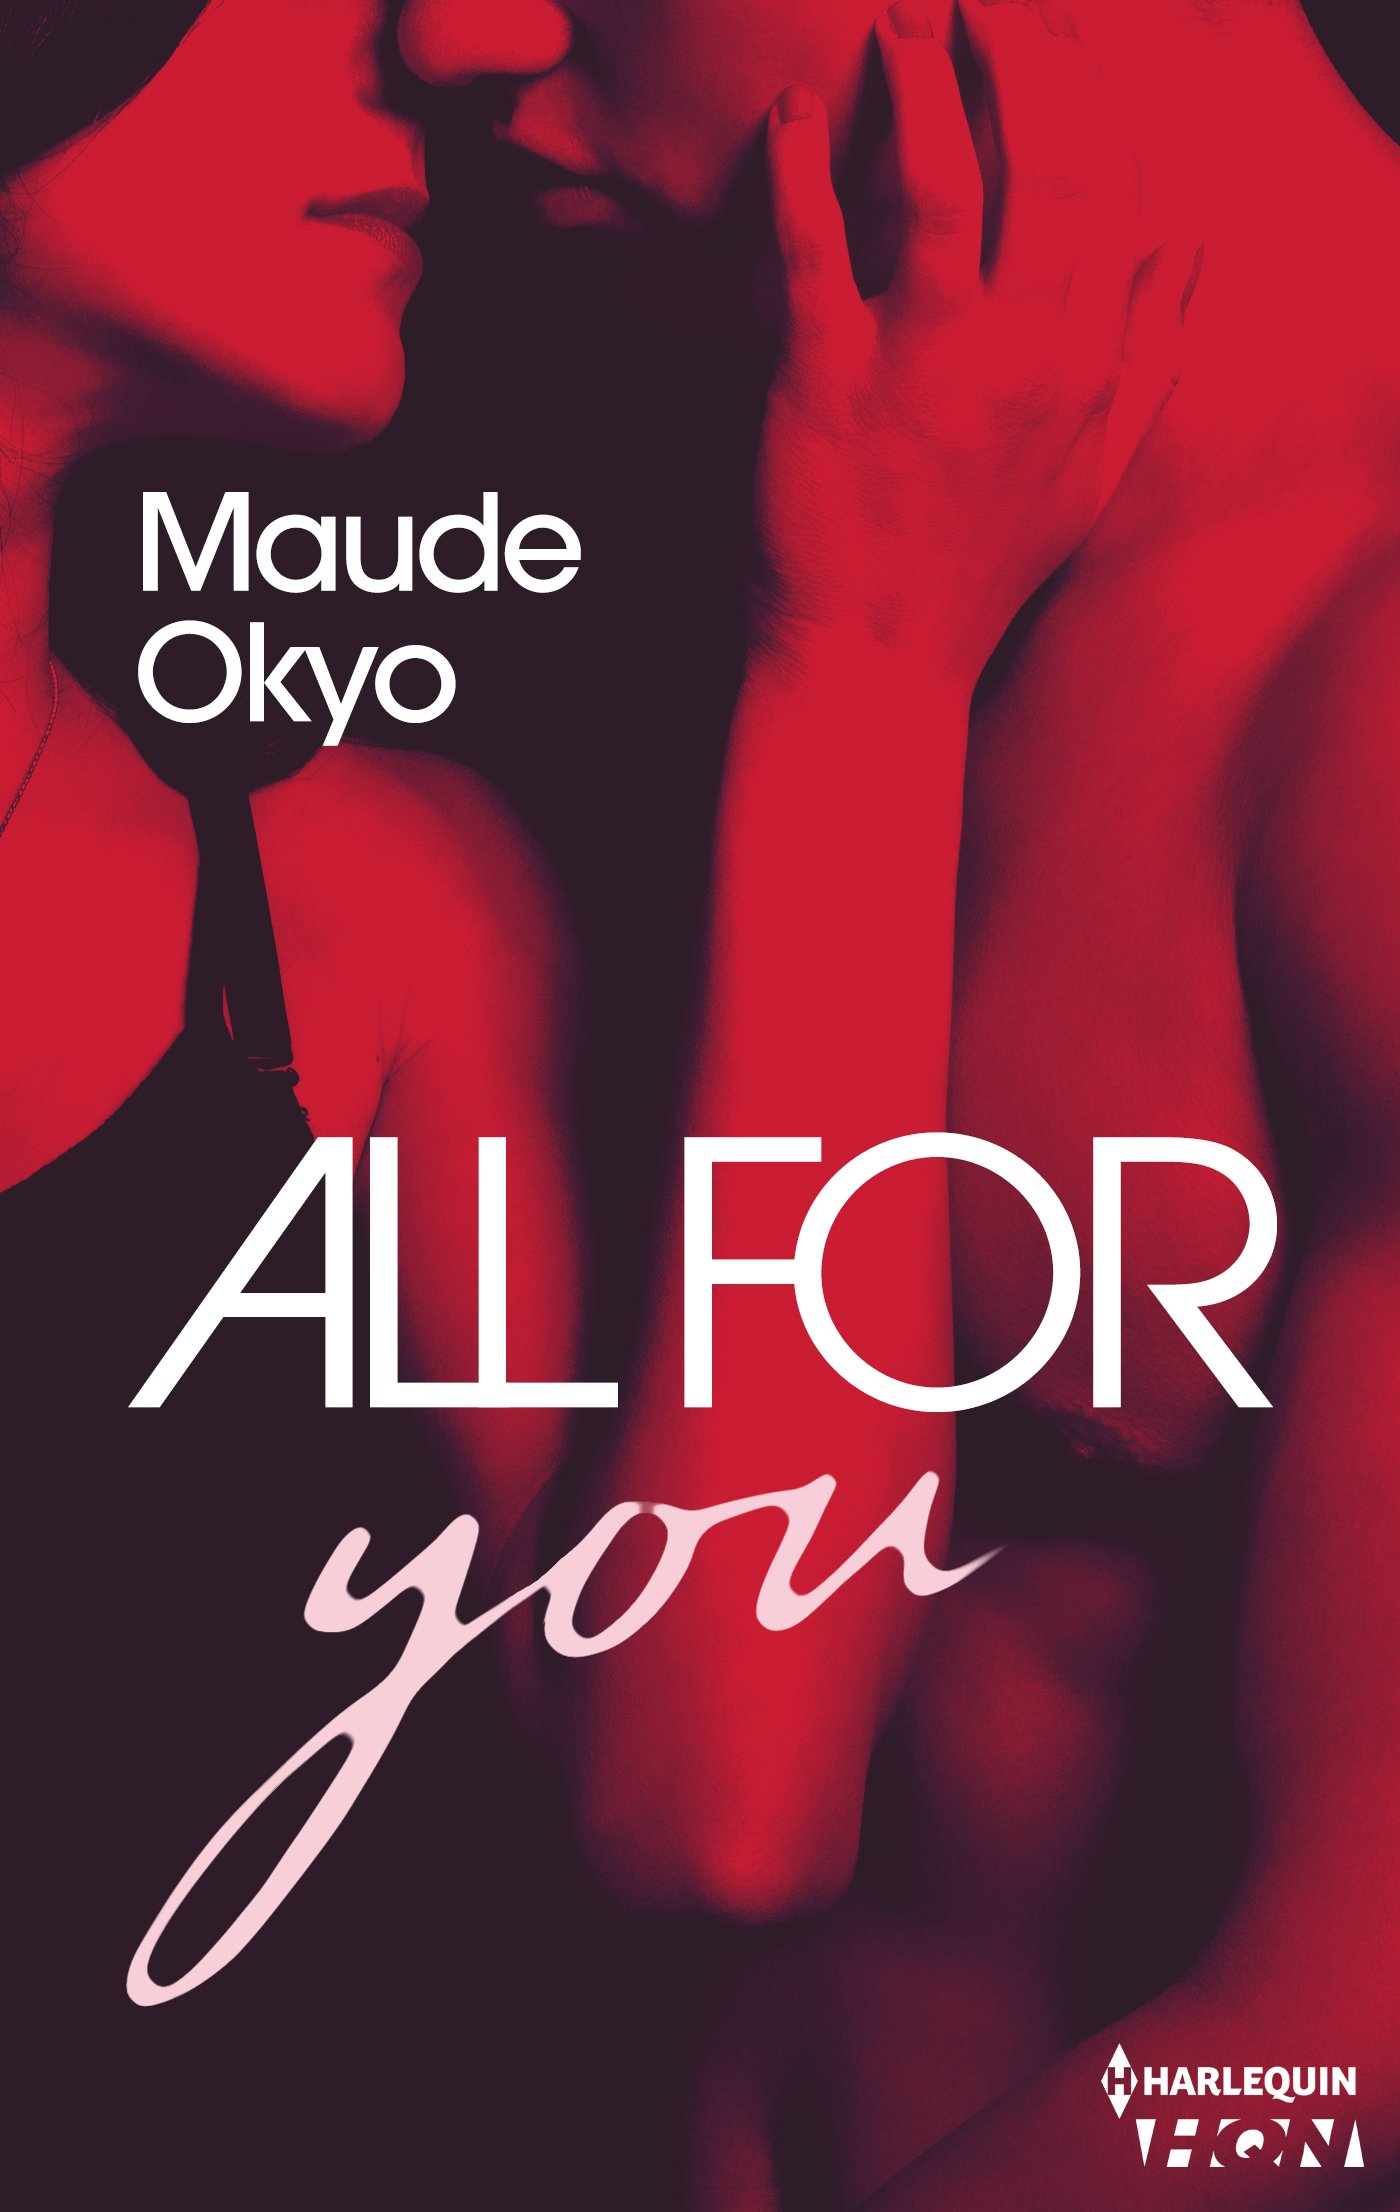 Couverture : Maude Okyo, ALL FOR you, HARLEQUIN HQN